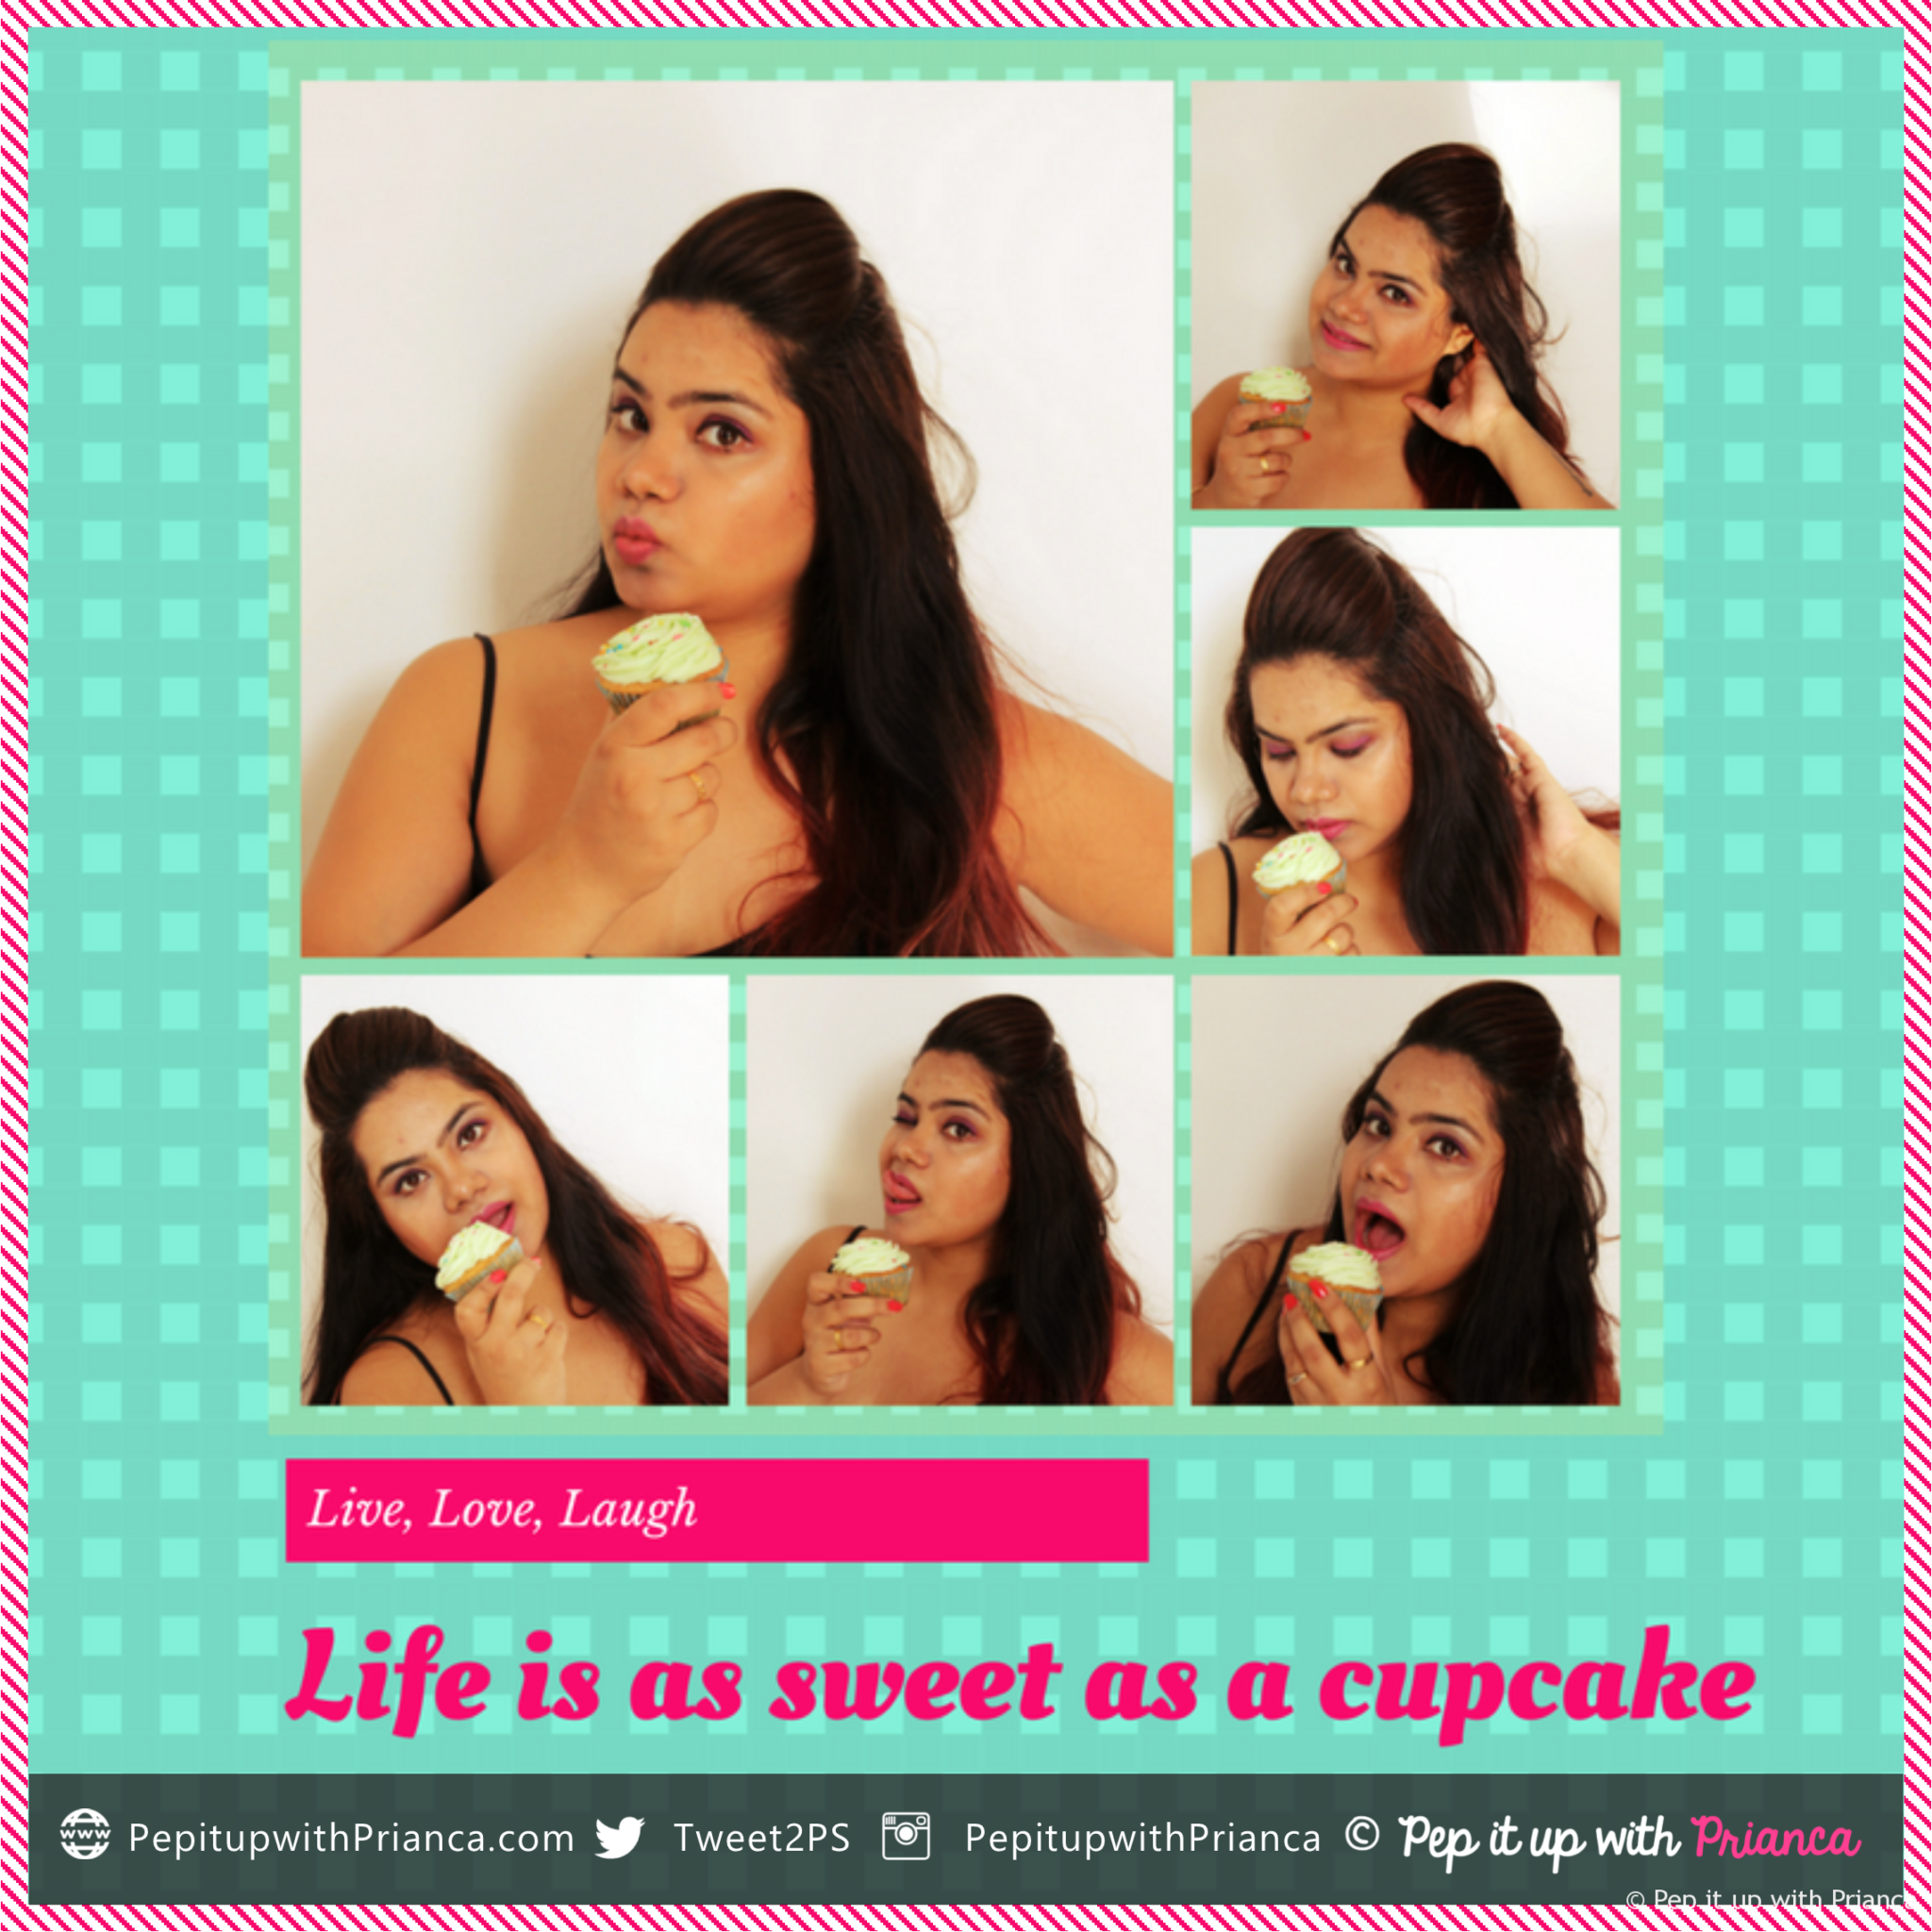 Saturday Cupcake - Learn the Recipe to Happiness - Bake Cute & Delicious Cupcakes for your Loved Ones